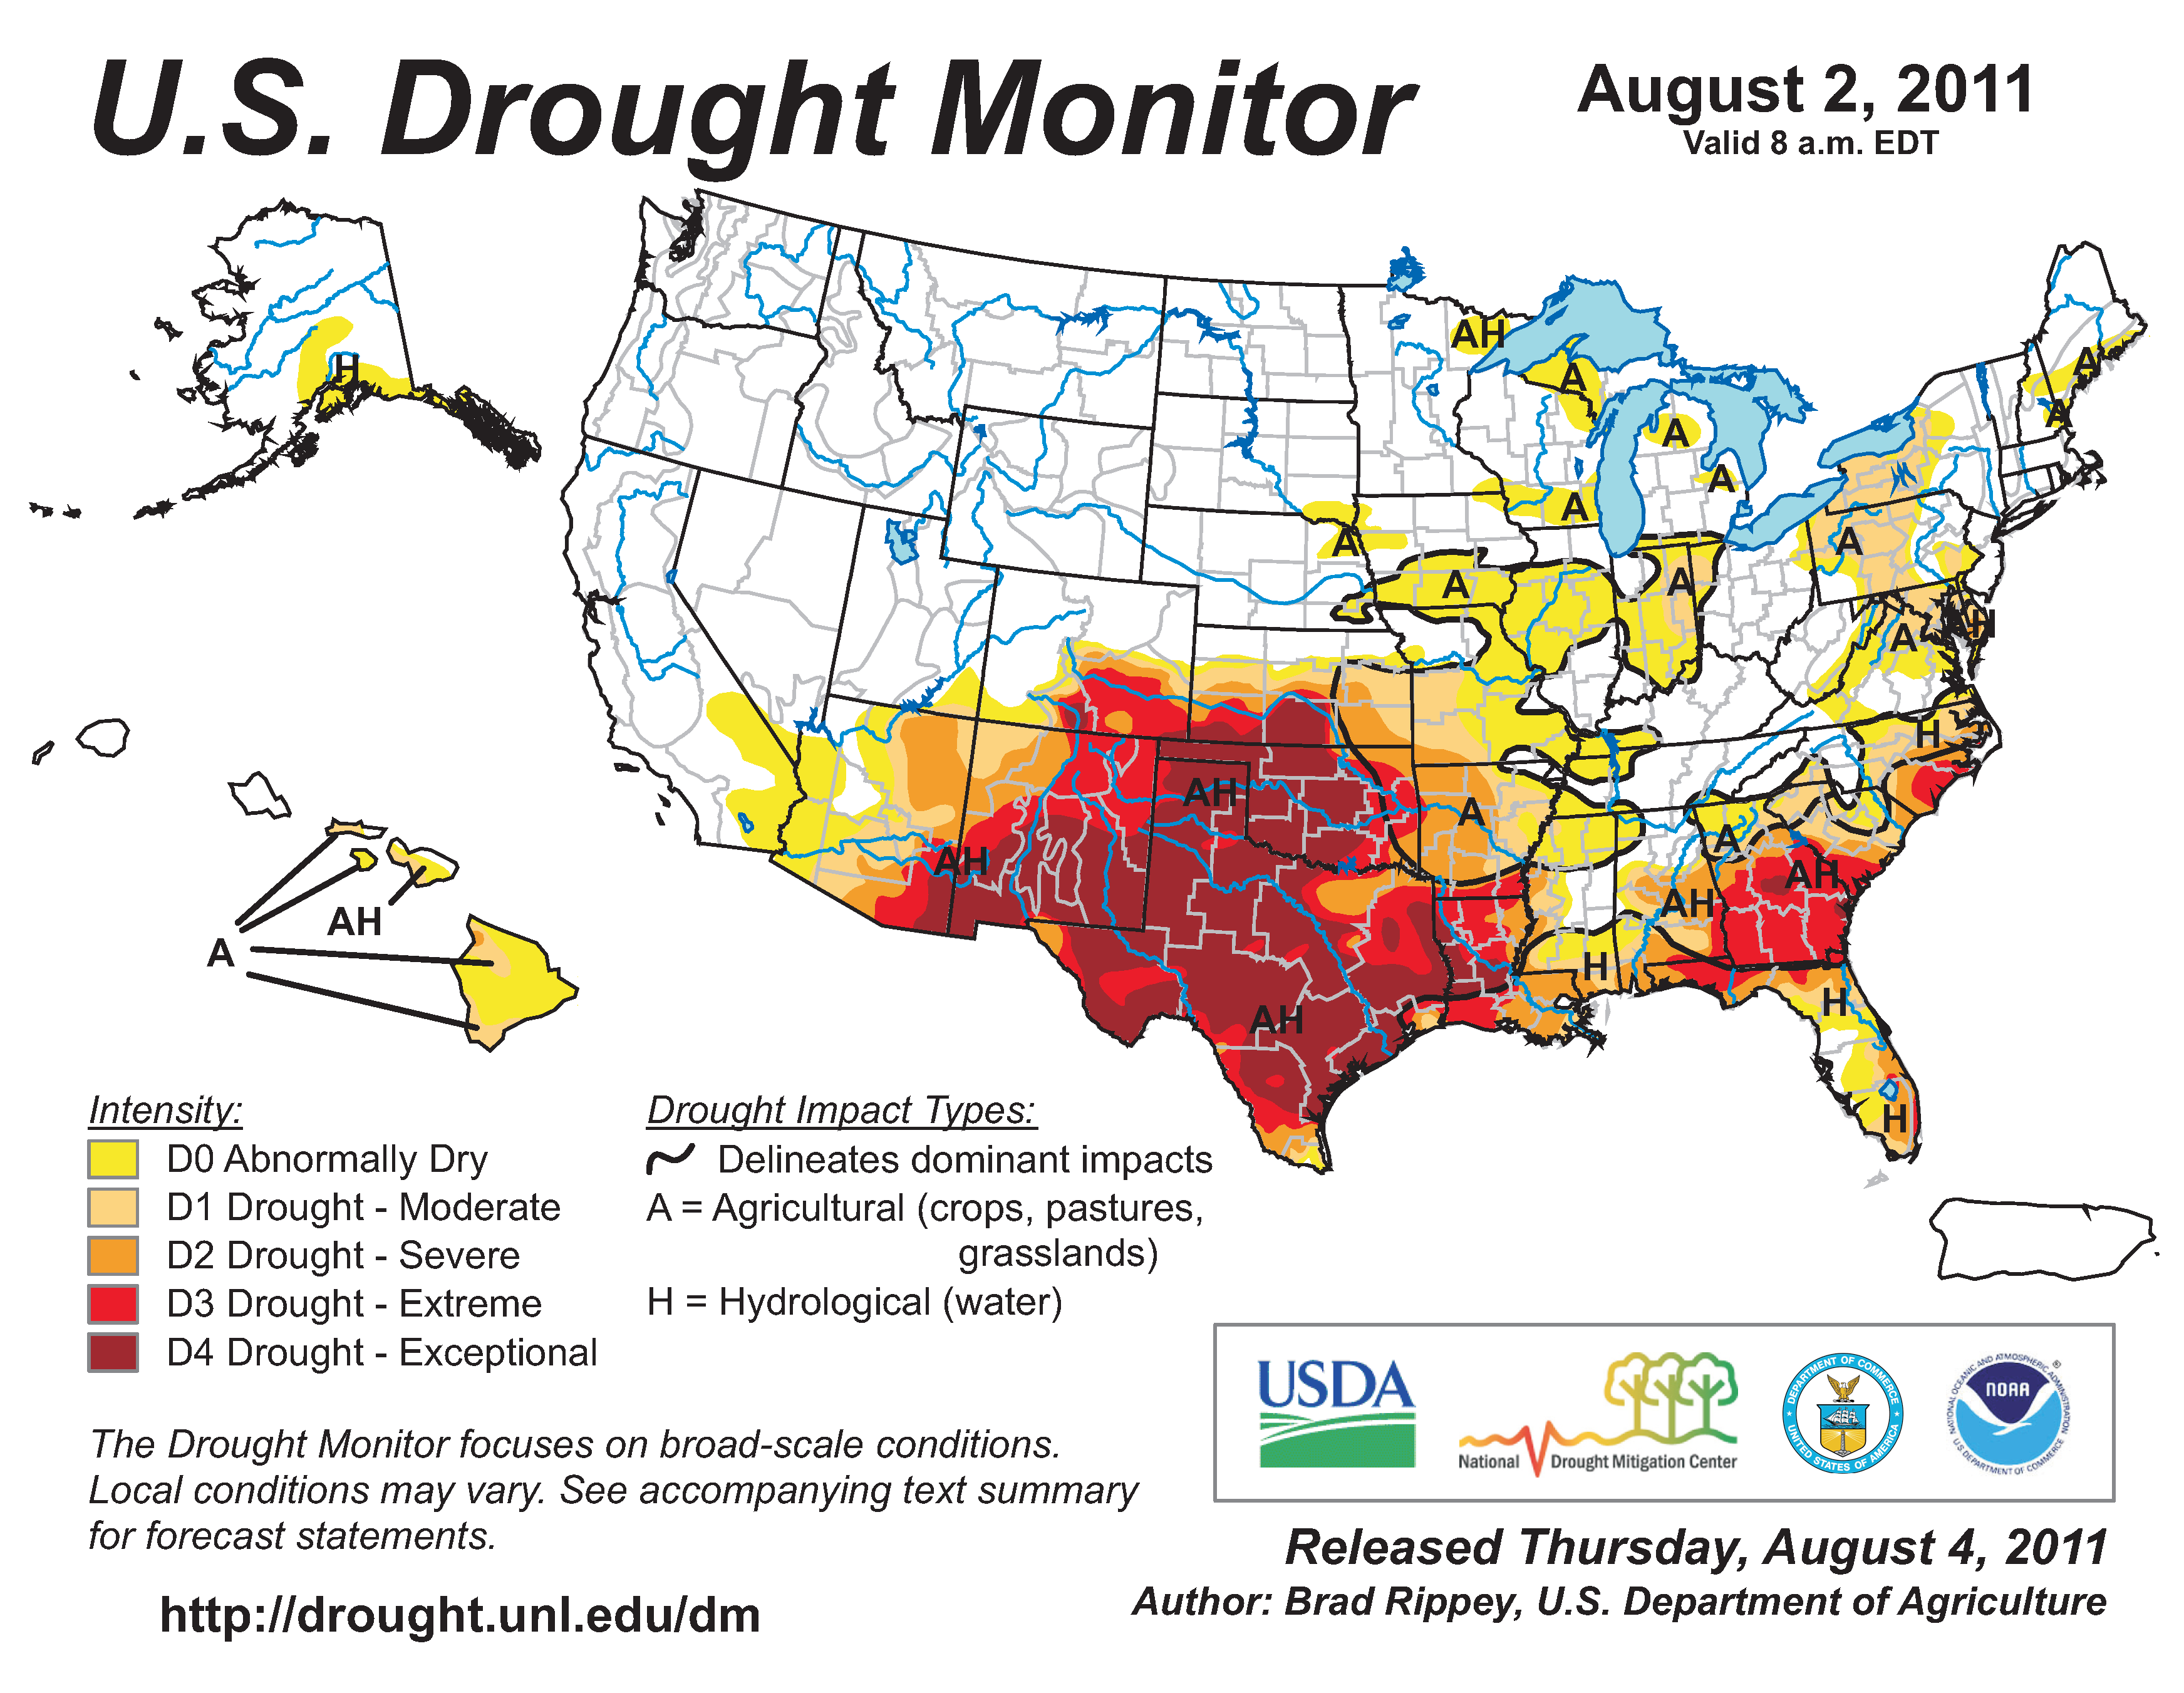 U.S. Drought Monitor map from 2 August 2011